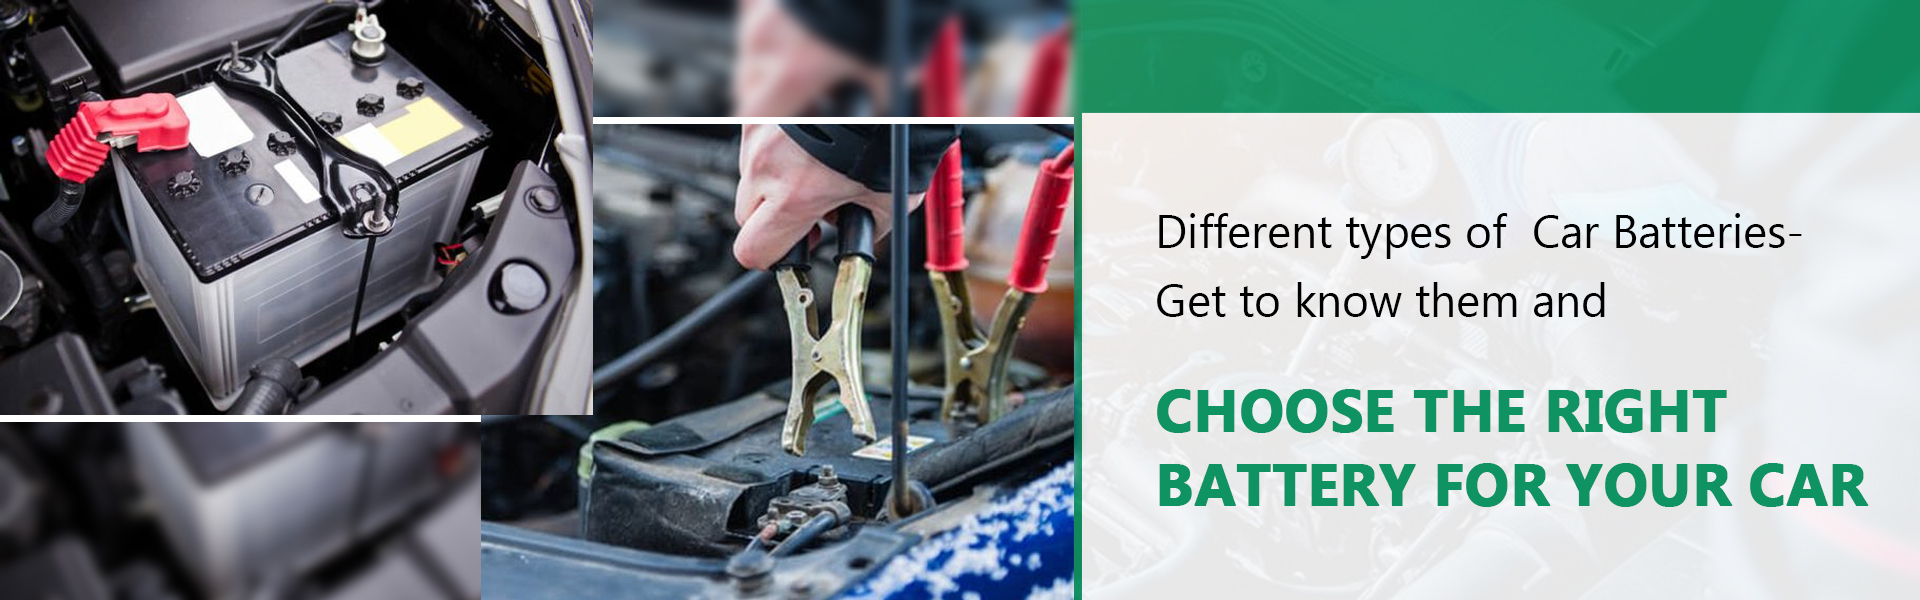 different types of car batteries